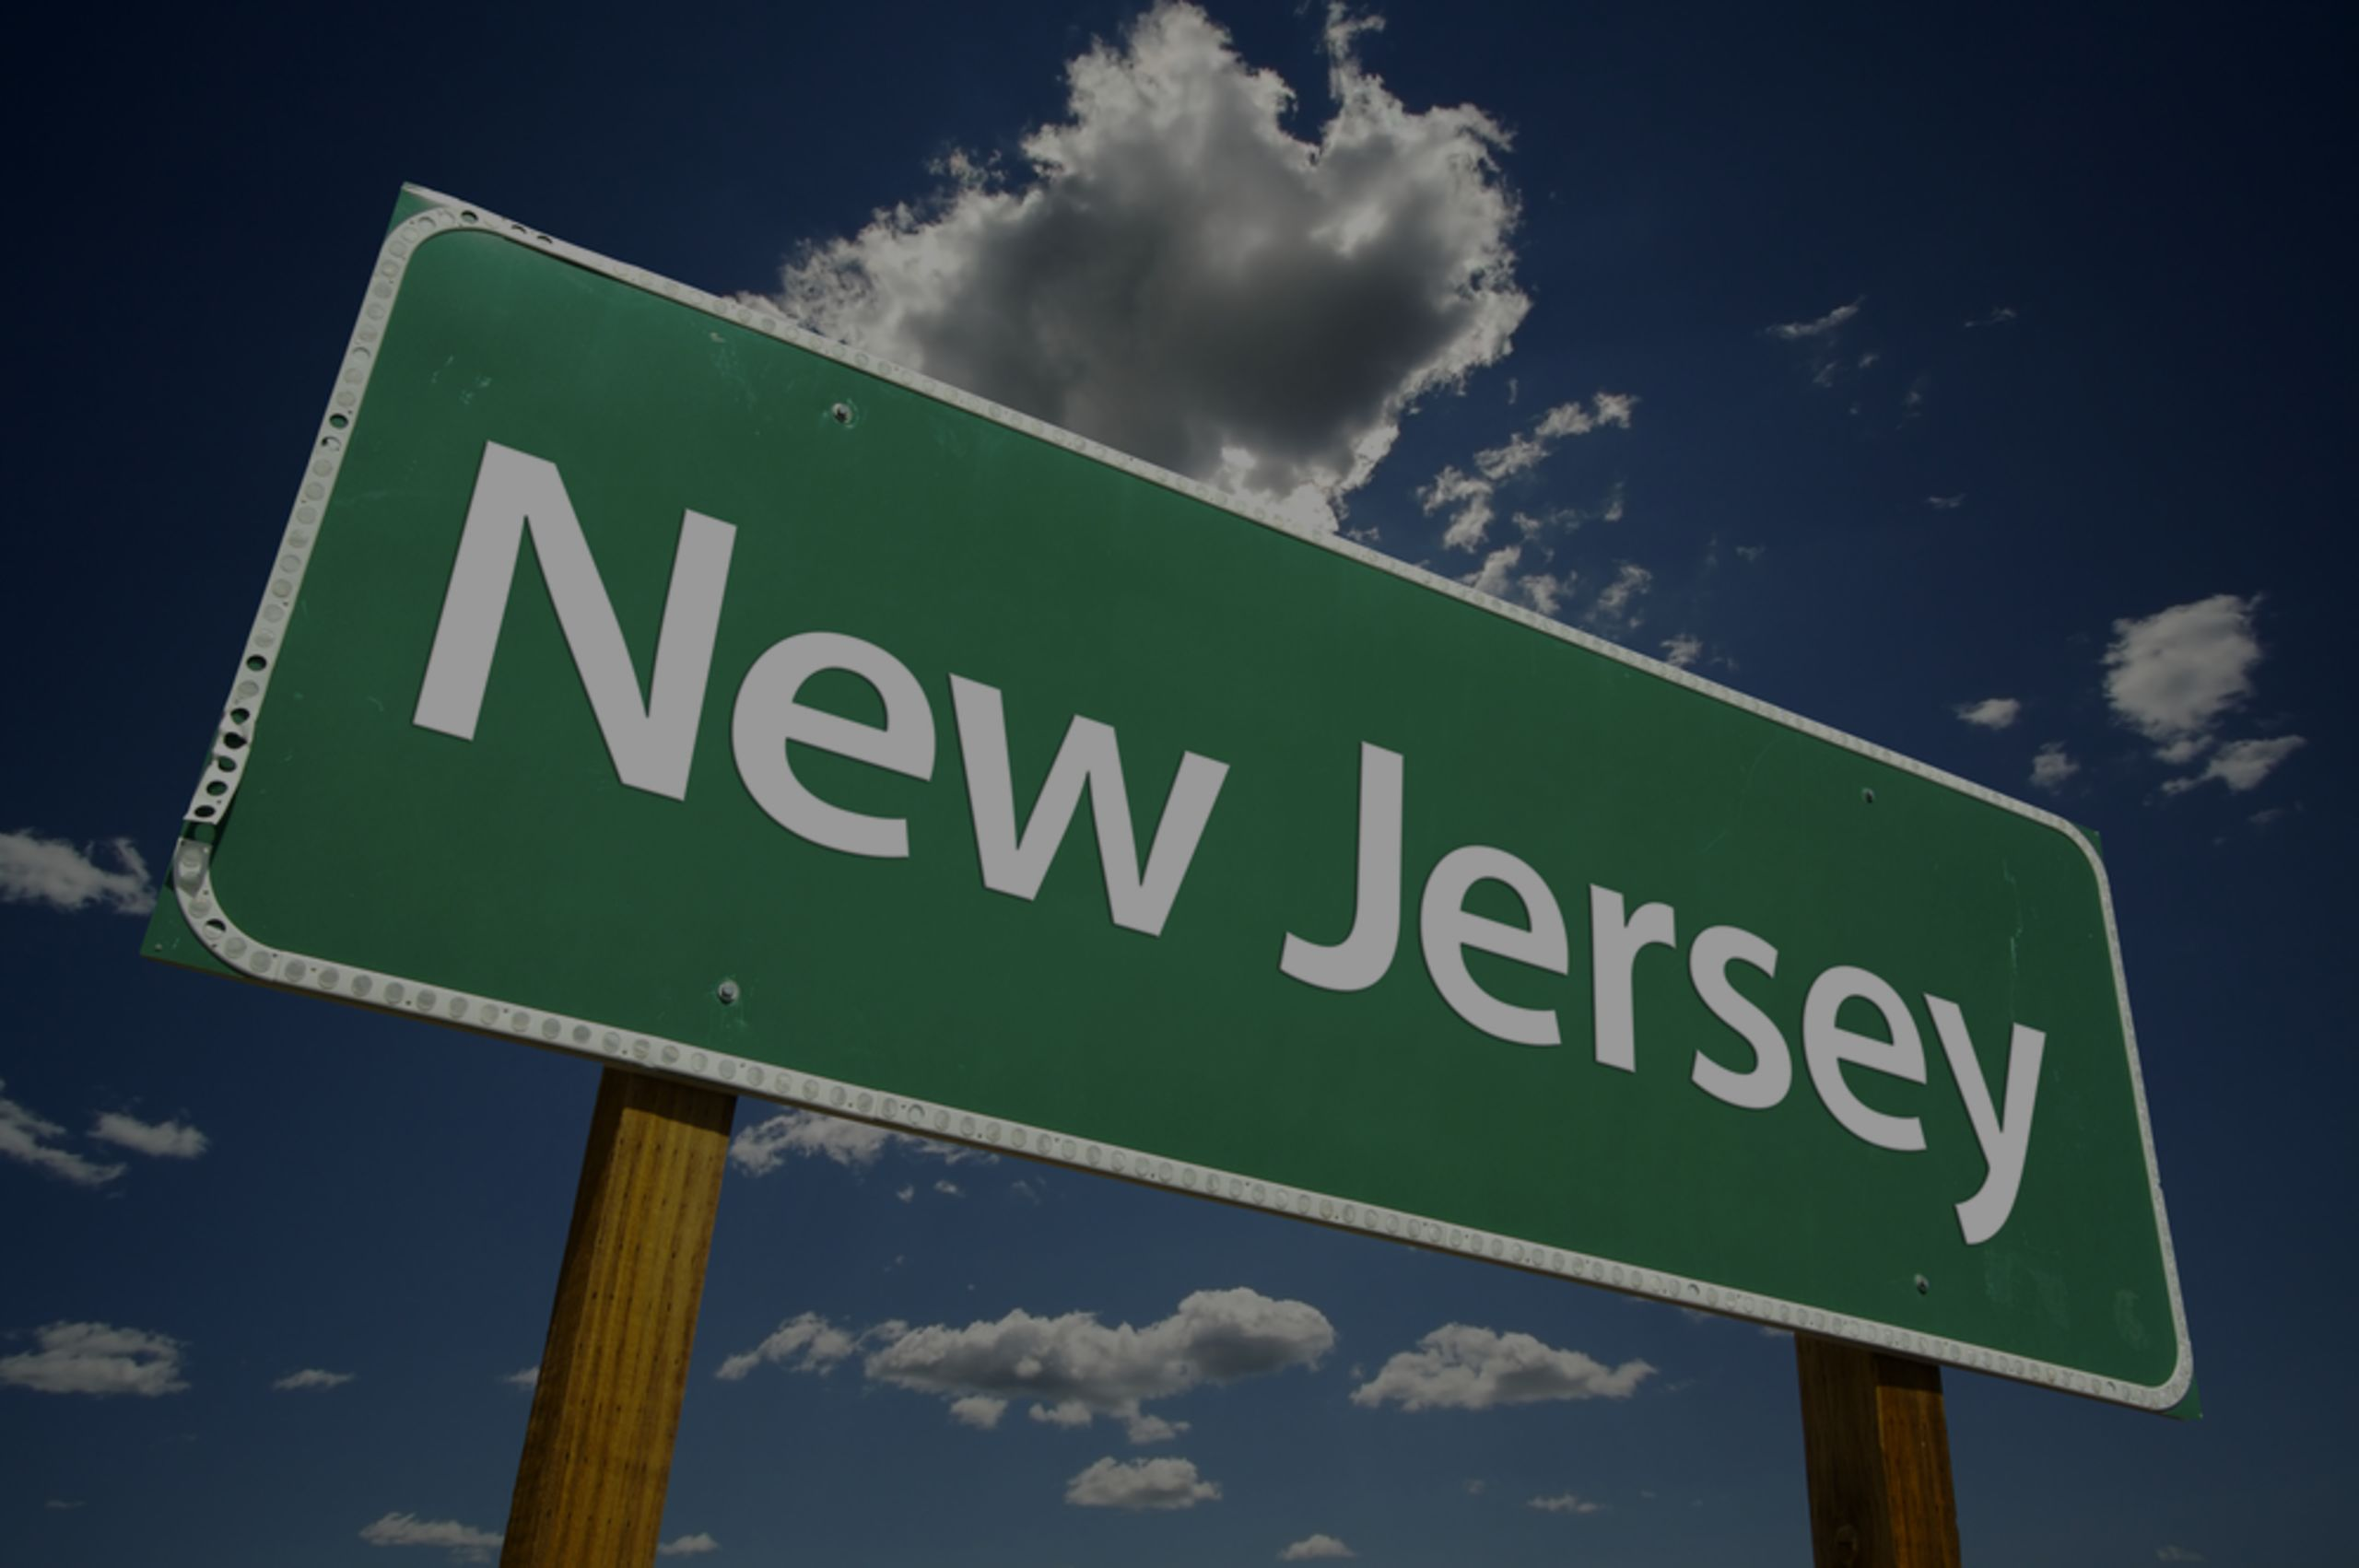 New Jersey Has 3 Of The Best Places To Live In America, Study Says